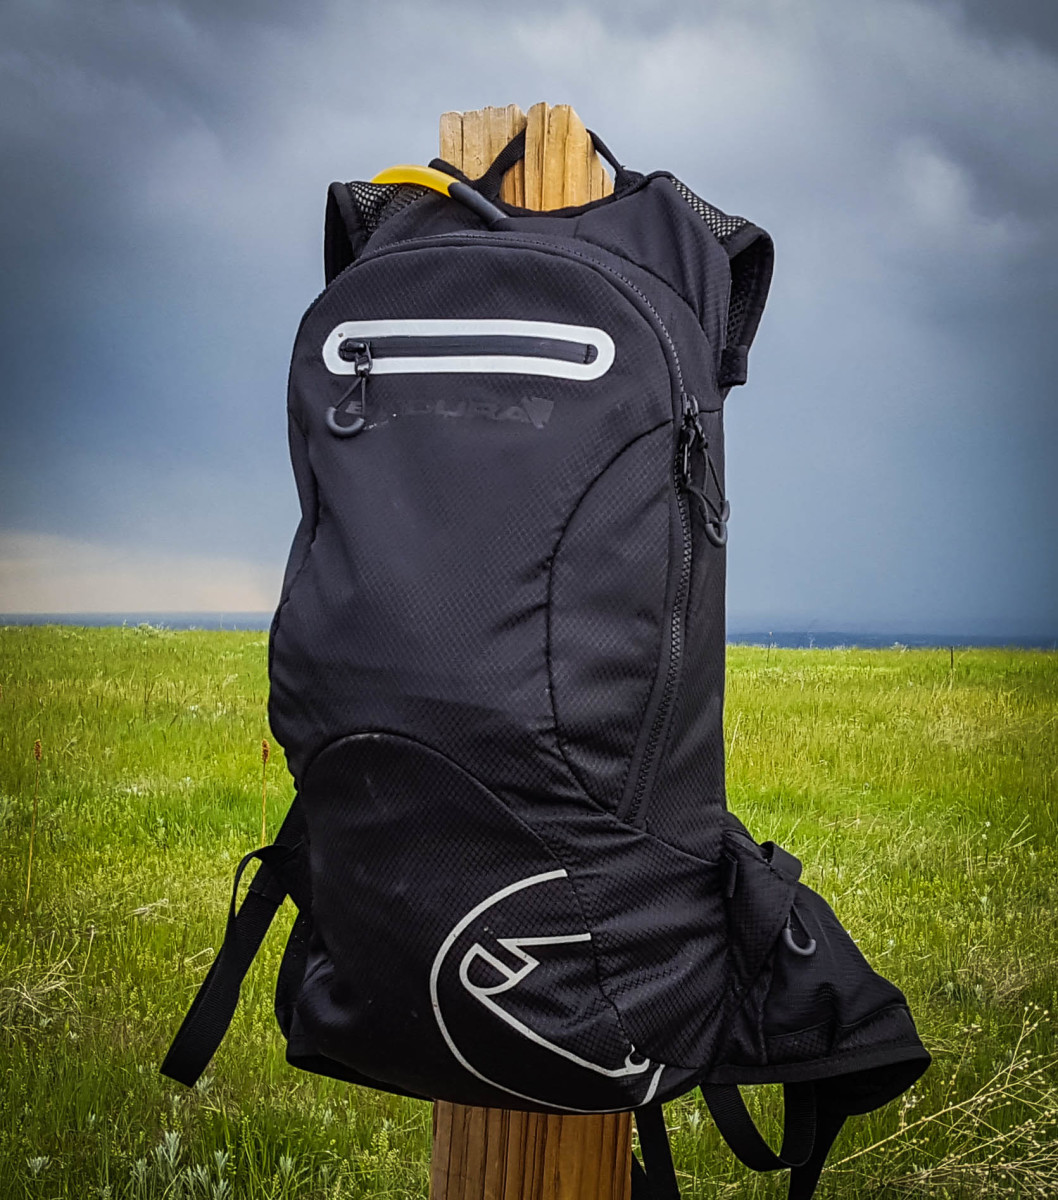 The Endura pack is ready to go for any adventure short or long